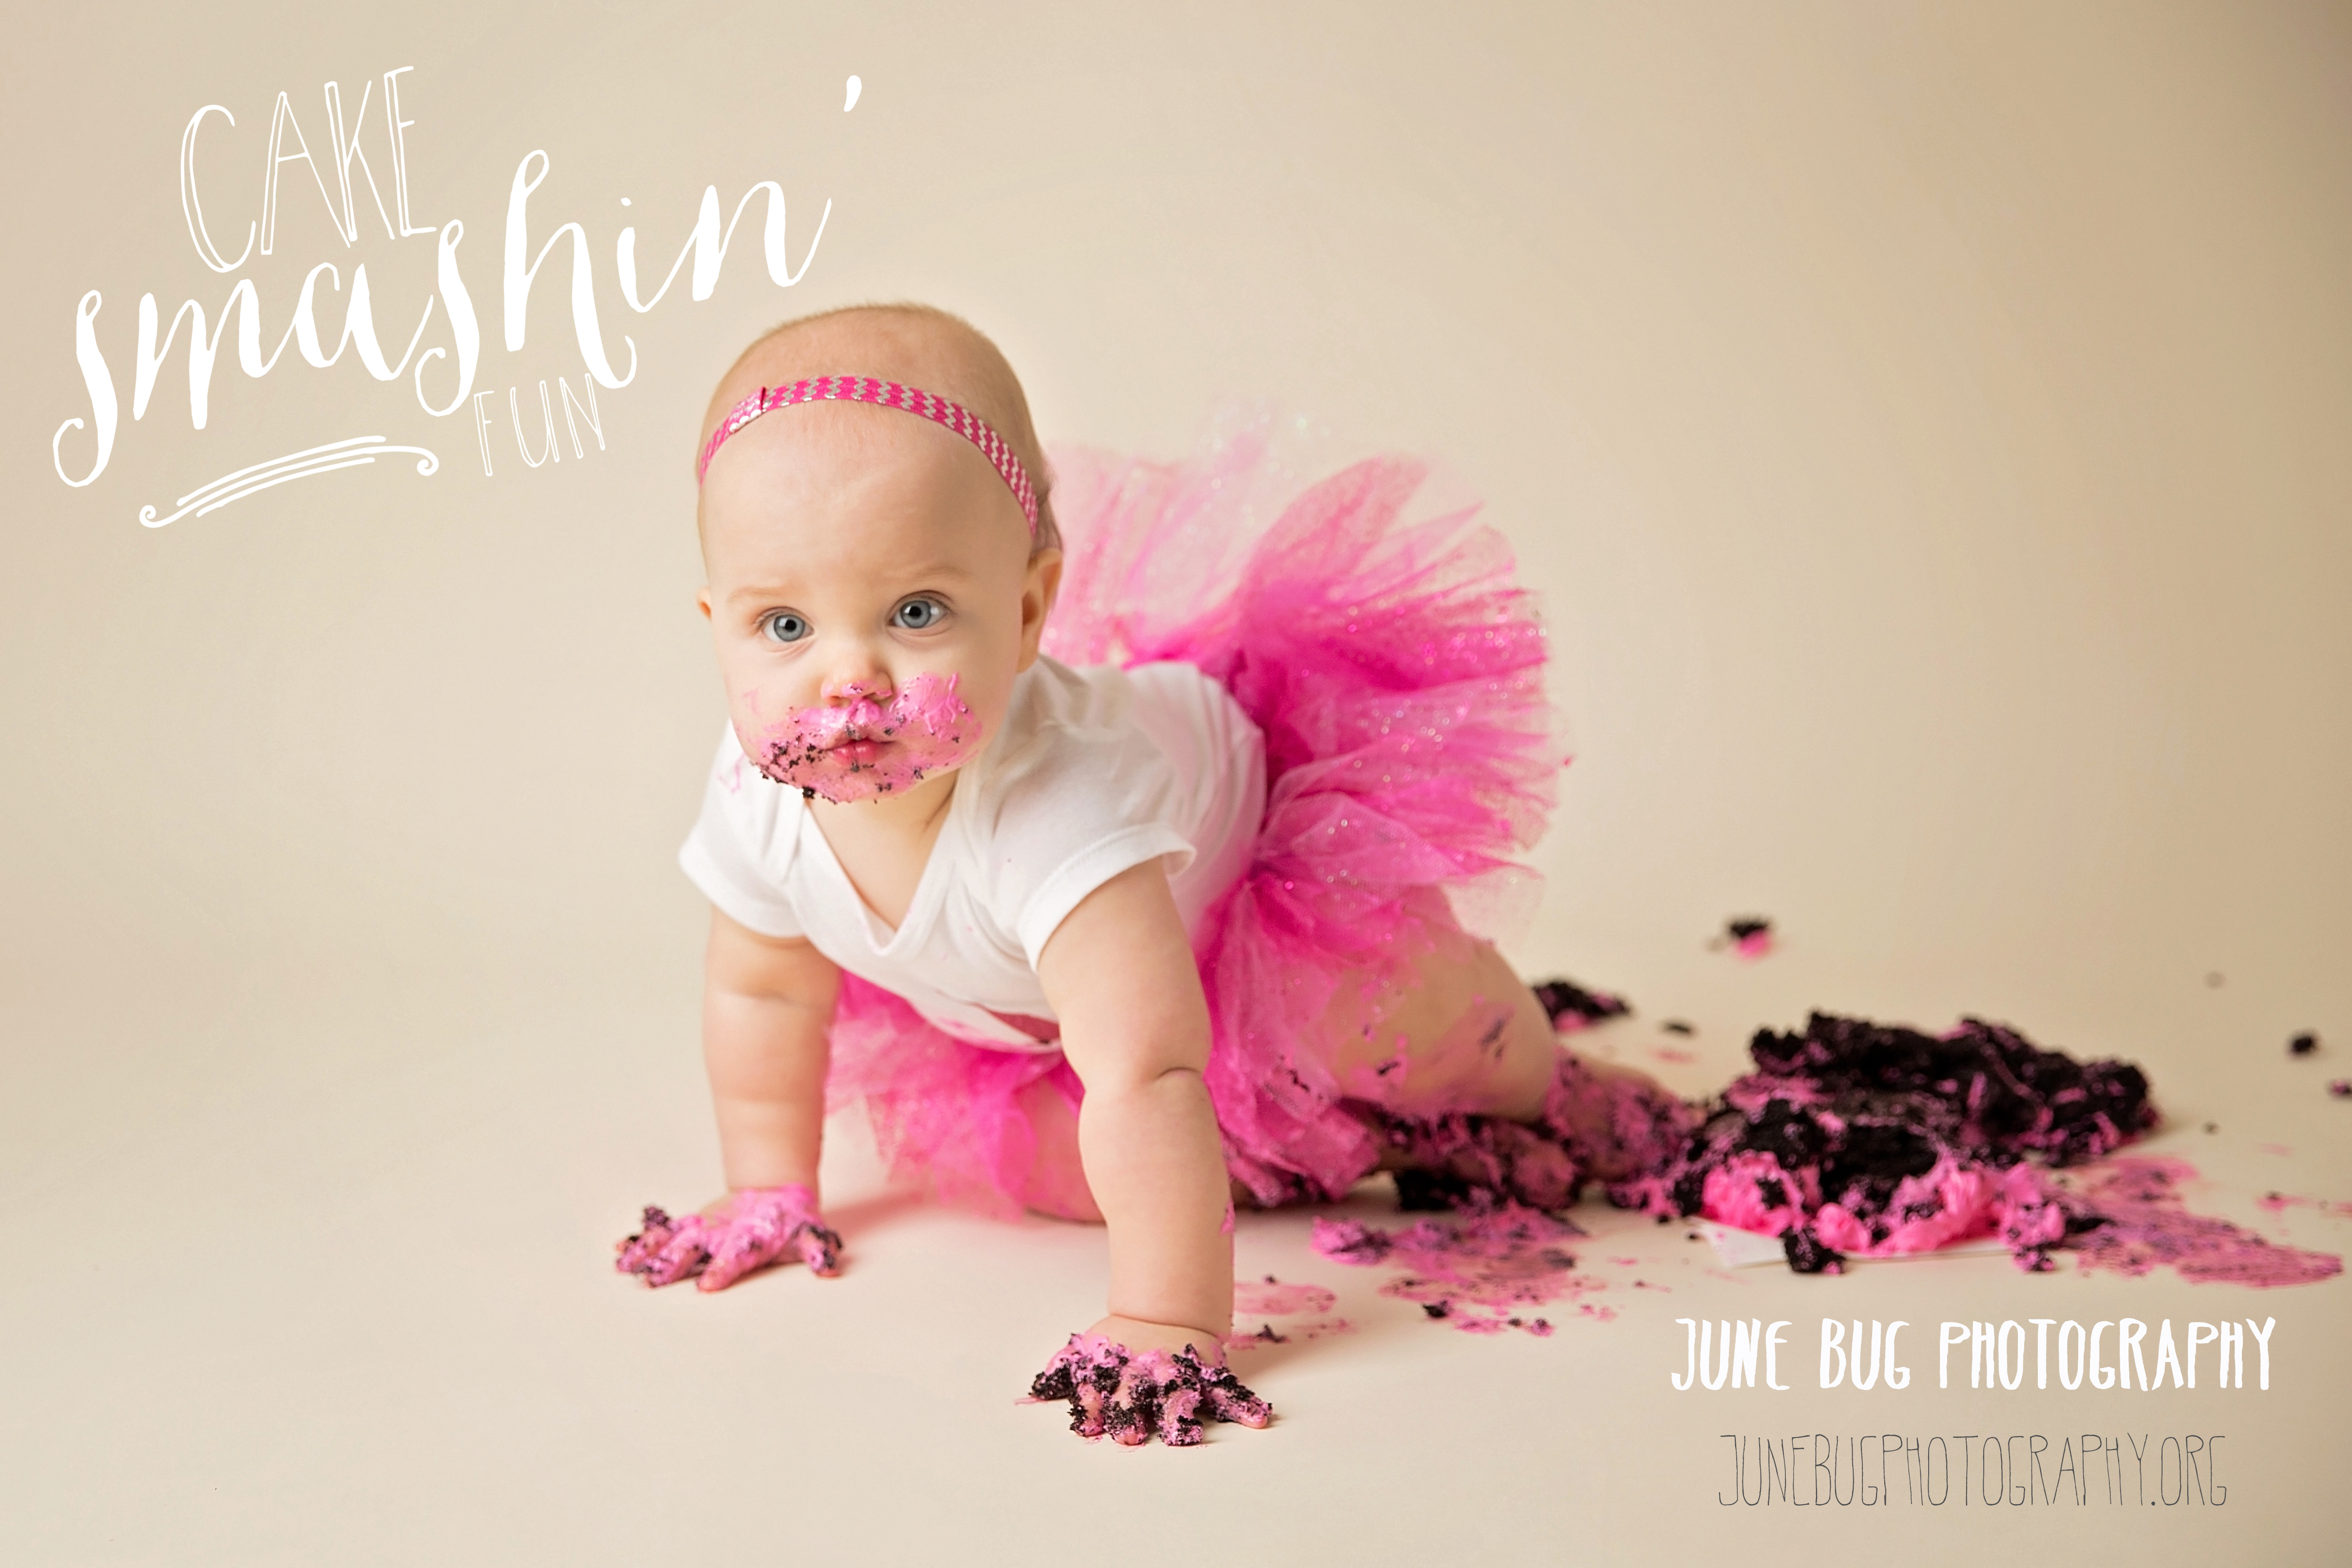 Babys First Birthday Cake Smash Snohomish County Photographer June